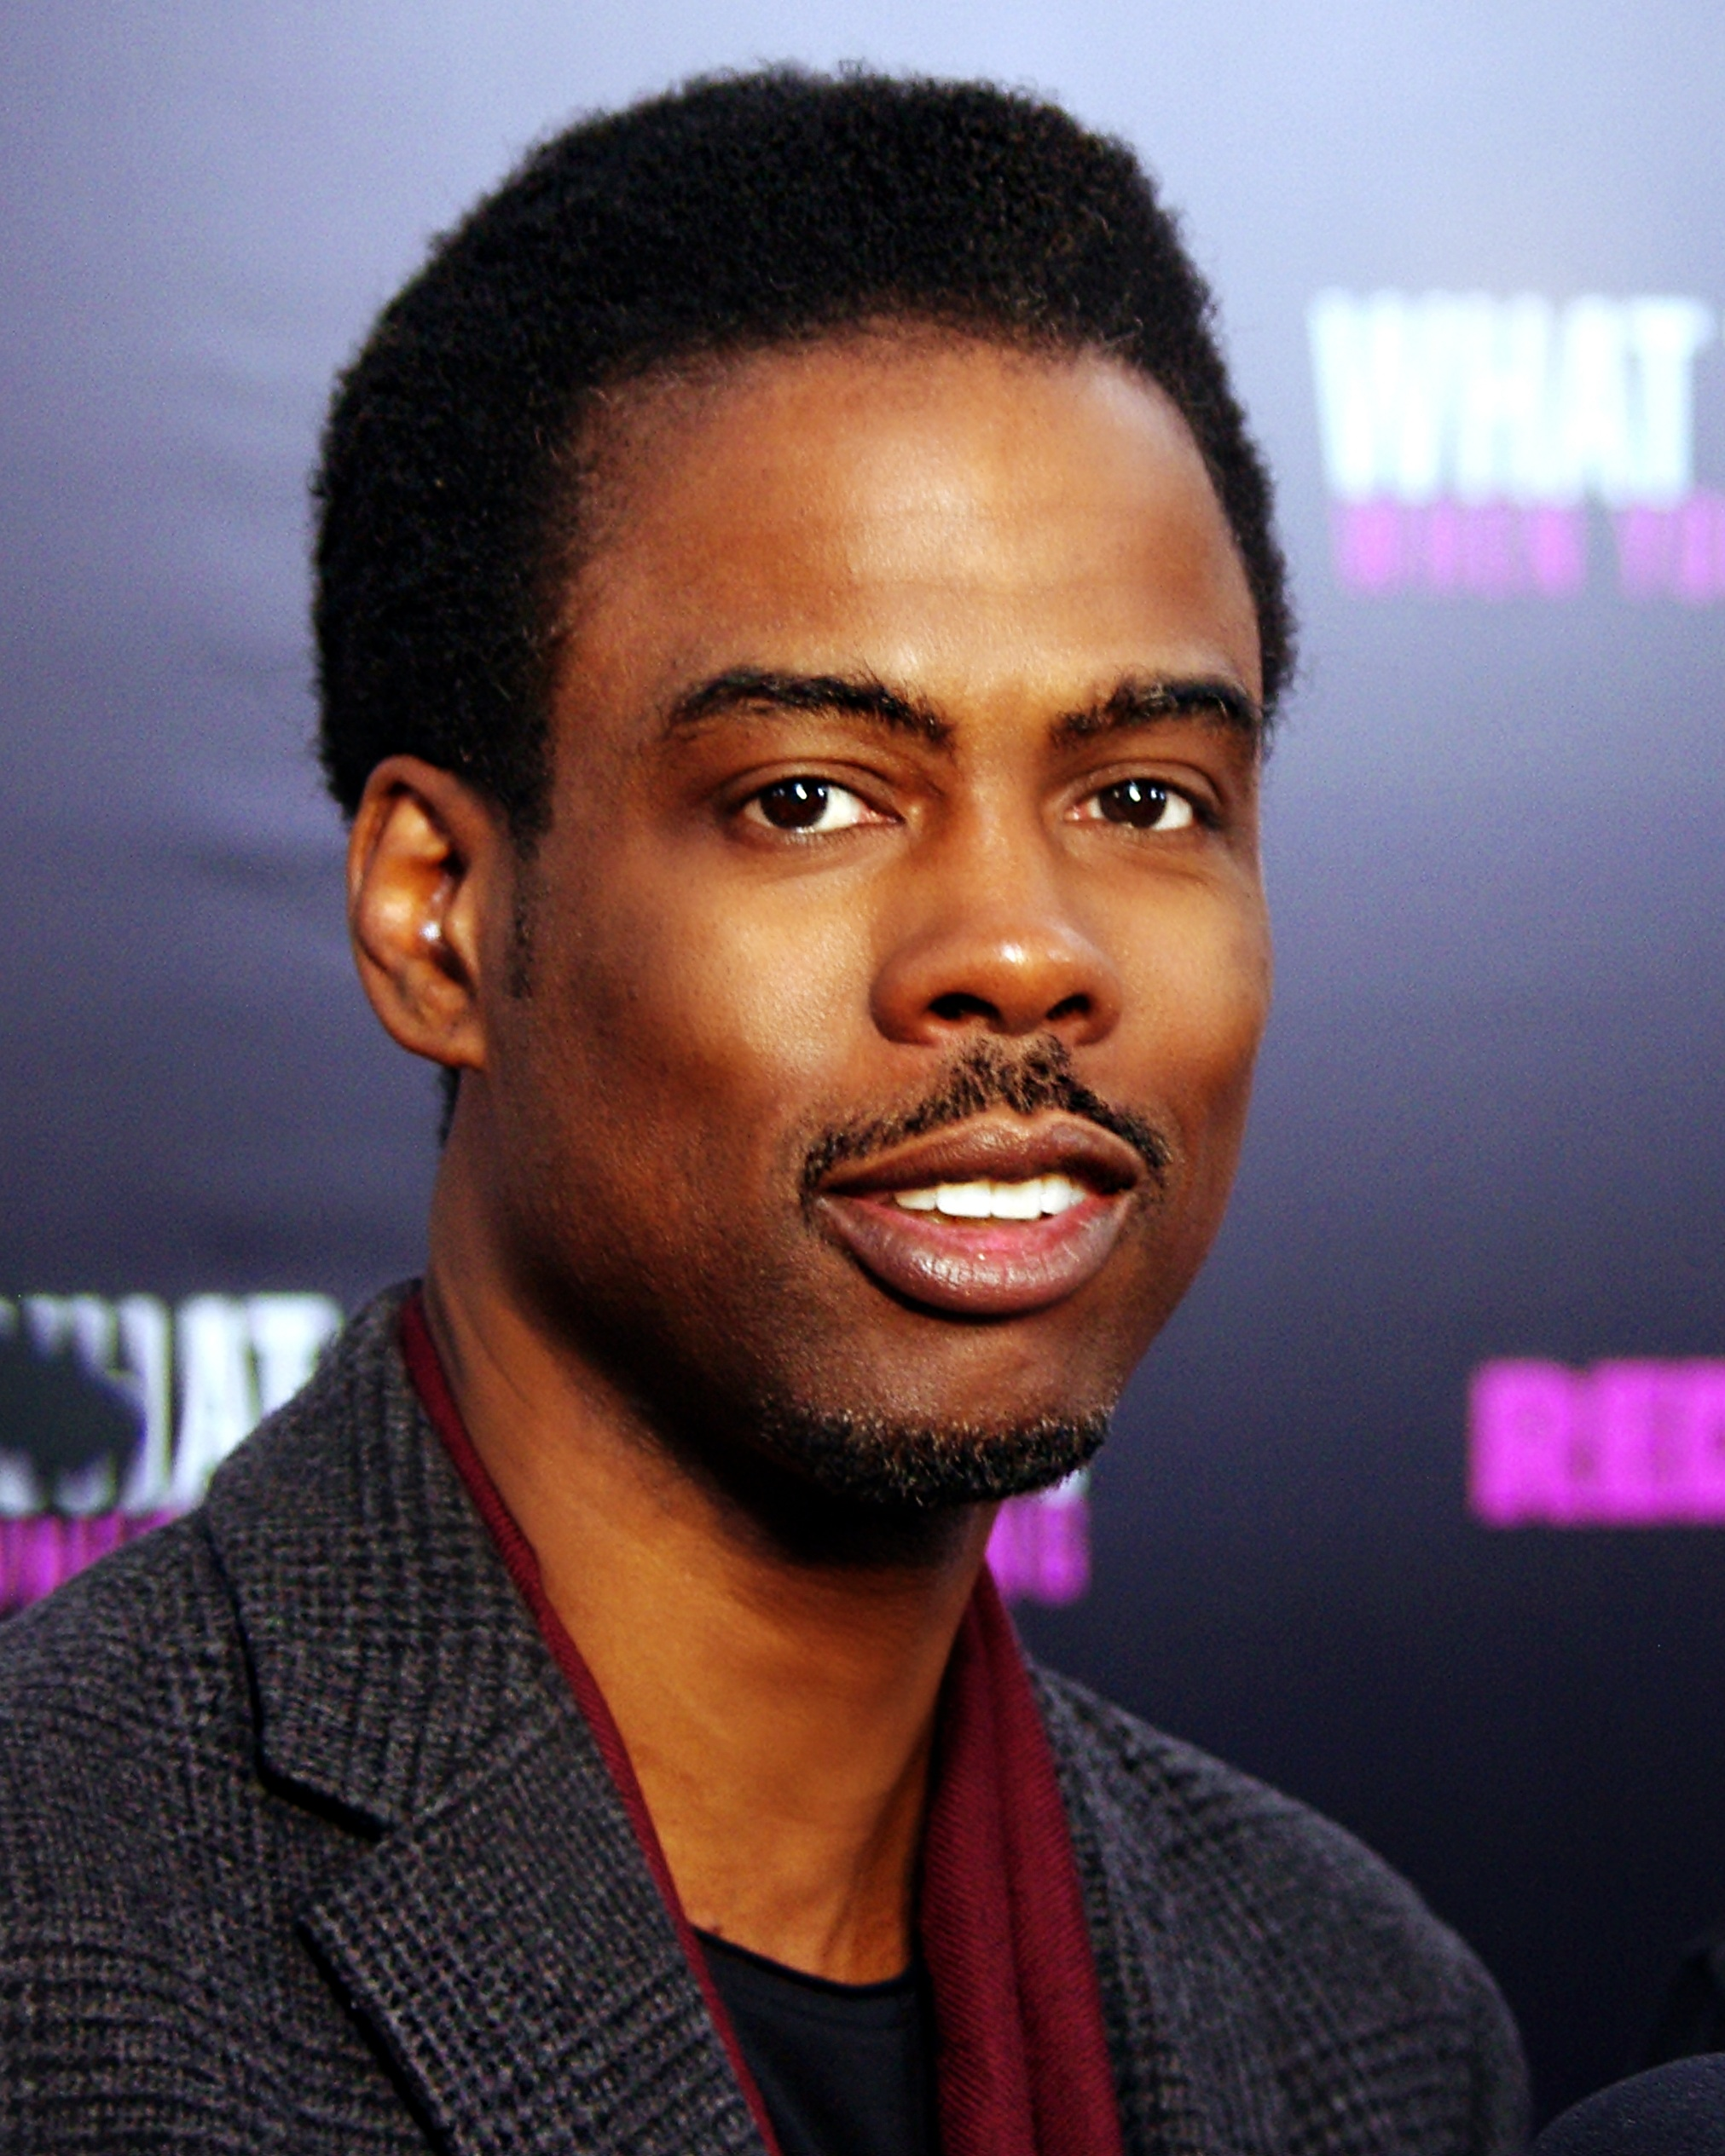 Chris_Rock_WE_2012_Shankbone Stand-Up Comedians to Book for National Humor Month Events